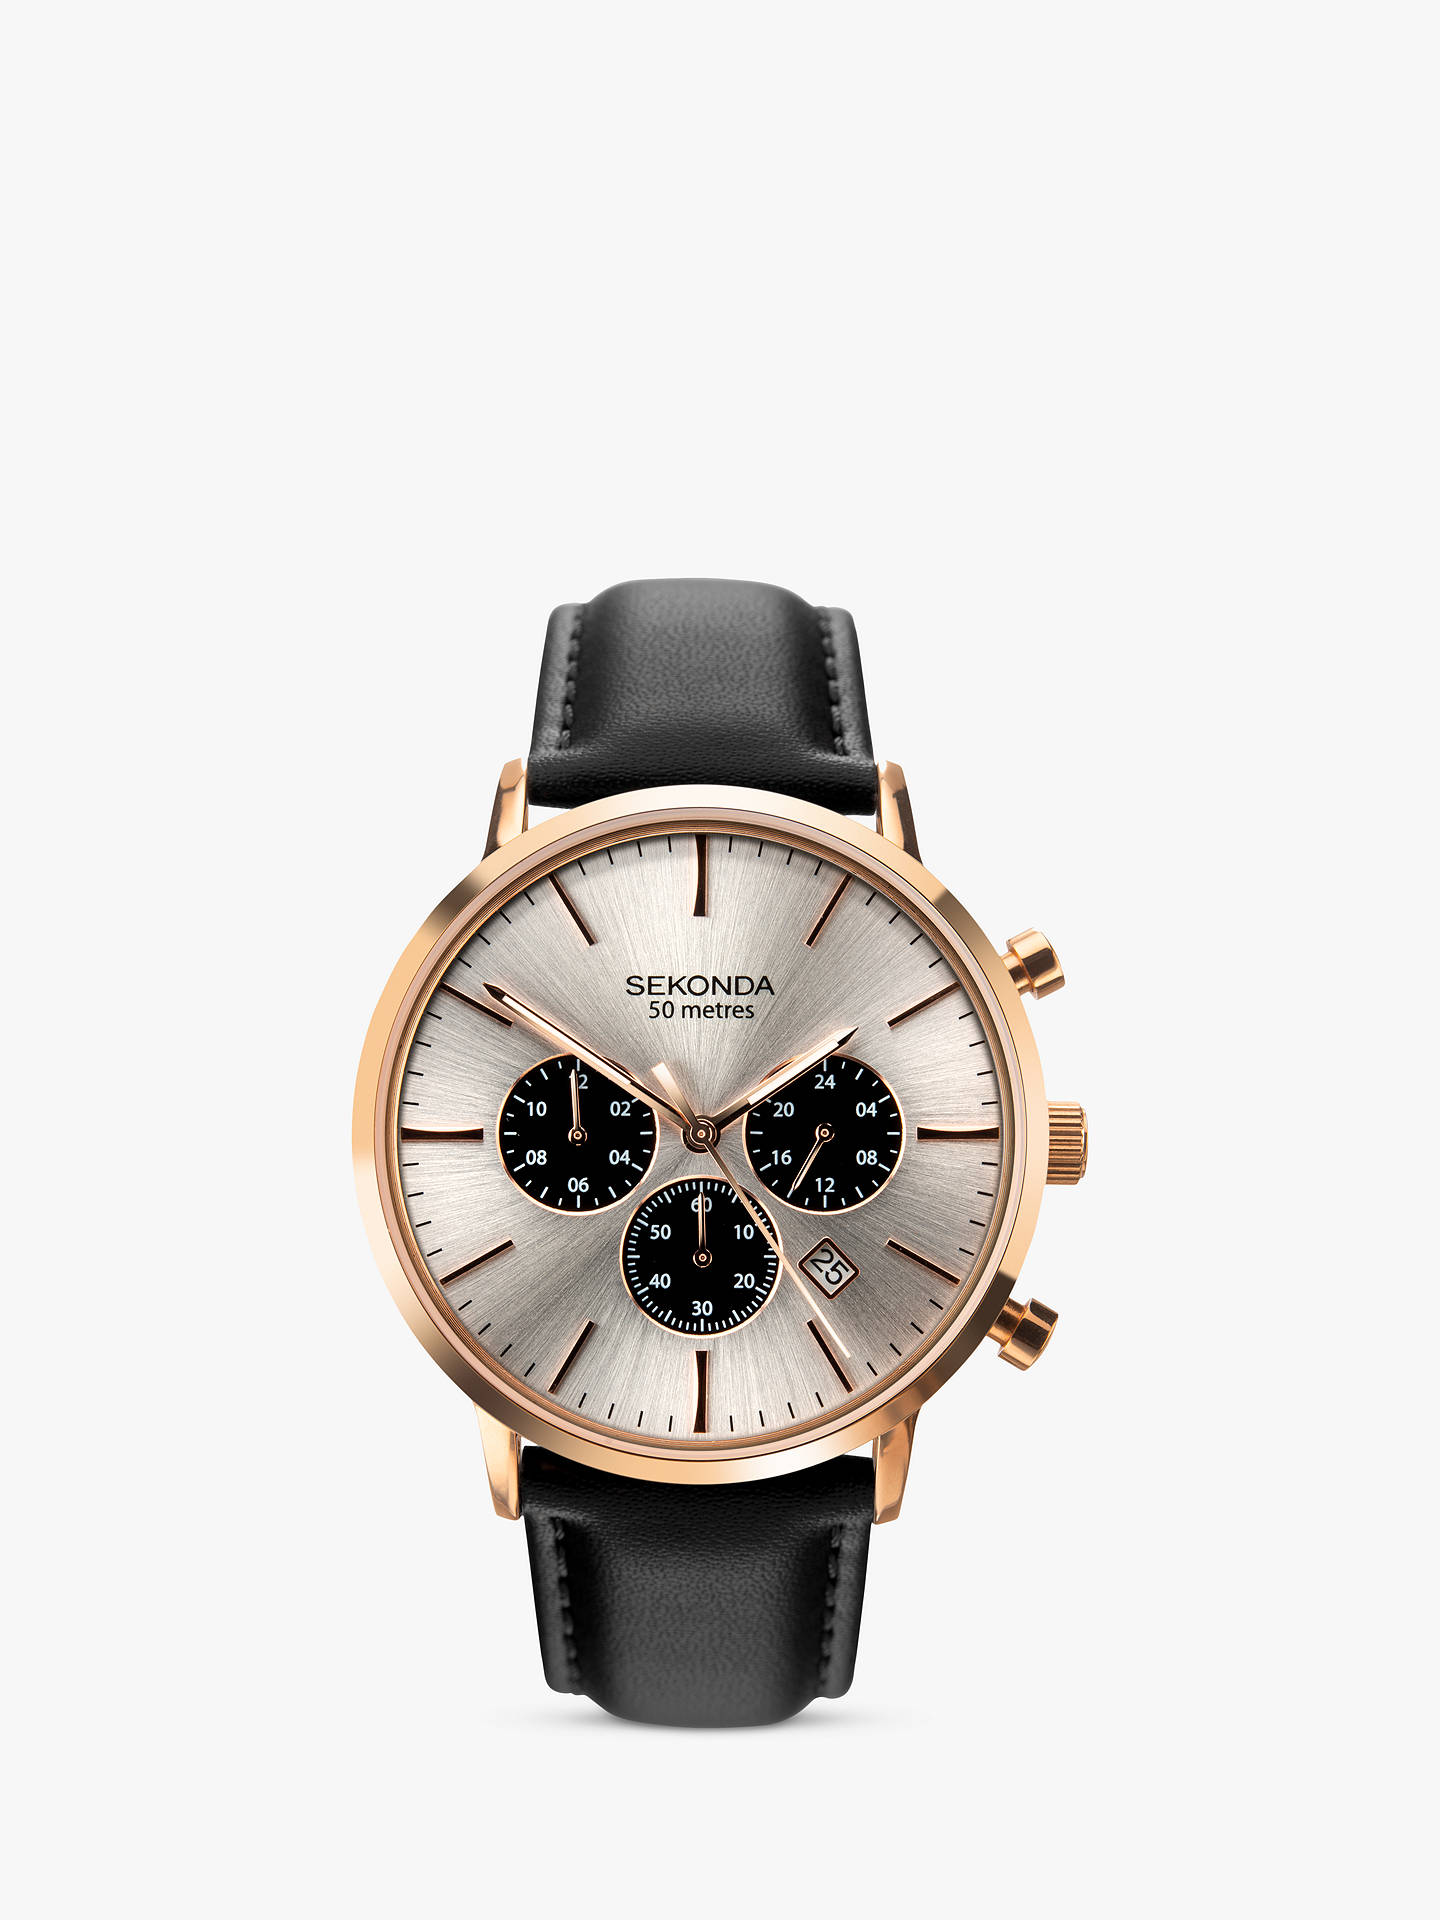 BuySekonda 1657.27 Men's Chronograph Date Leather Strap Watch, Black/Silver Online at johnlewis.com